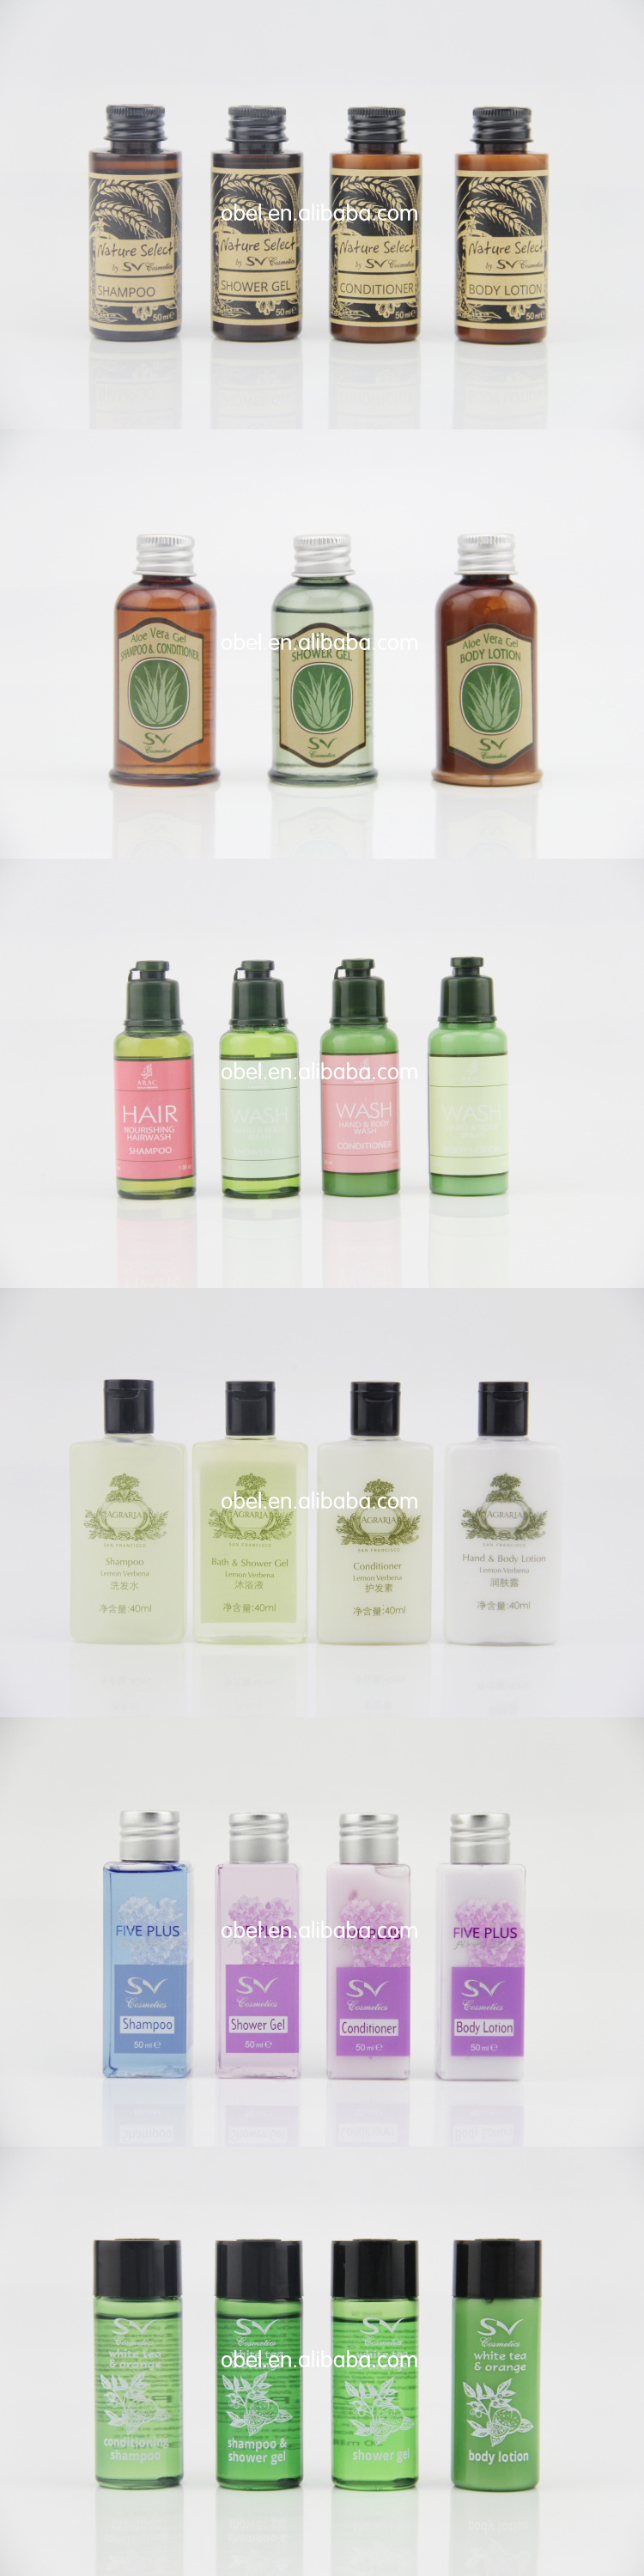 Hospitality Toiletries Suppliers